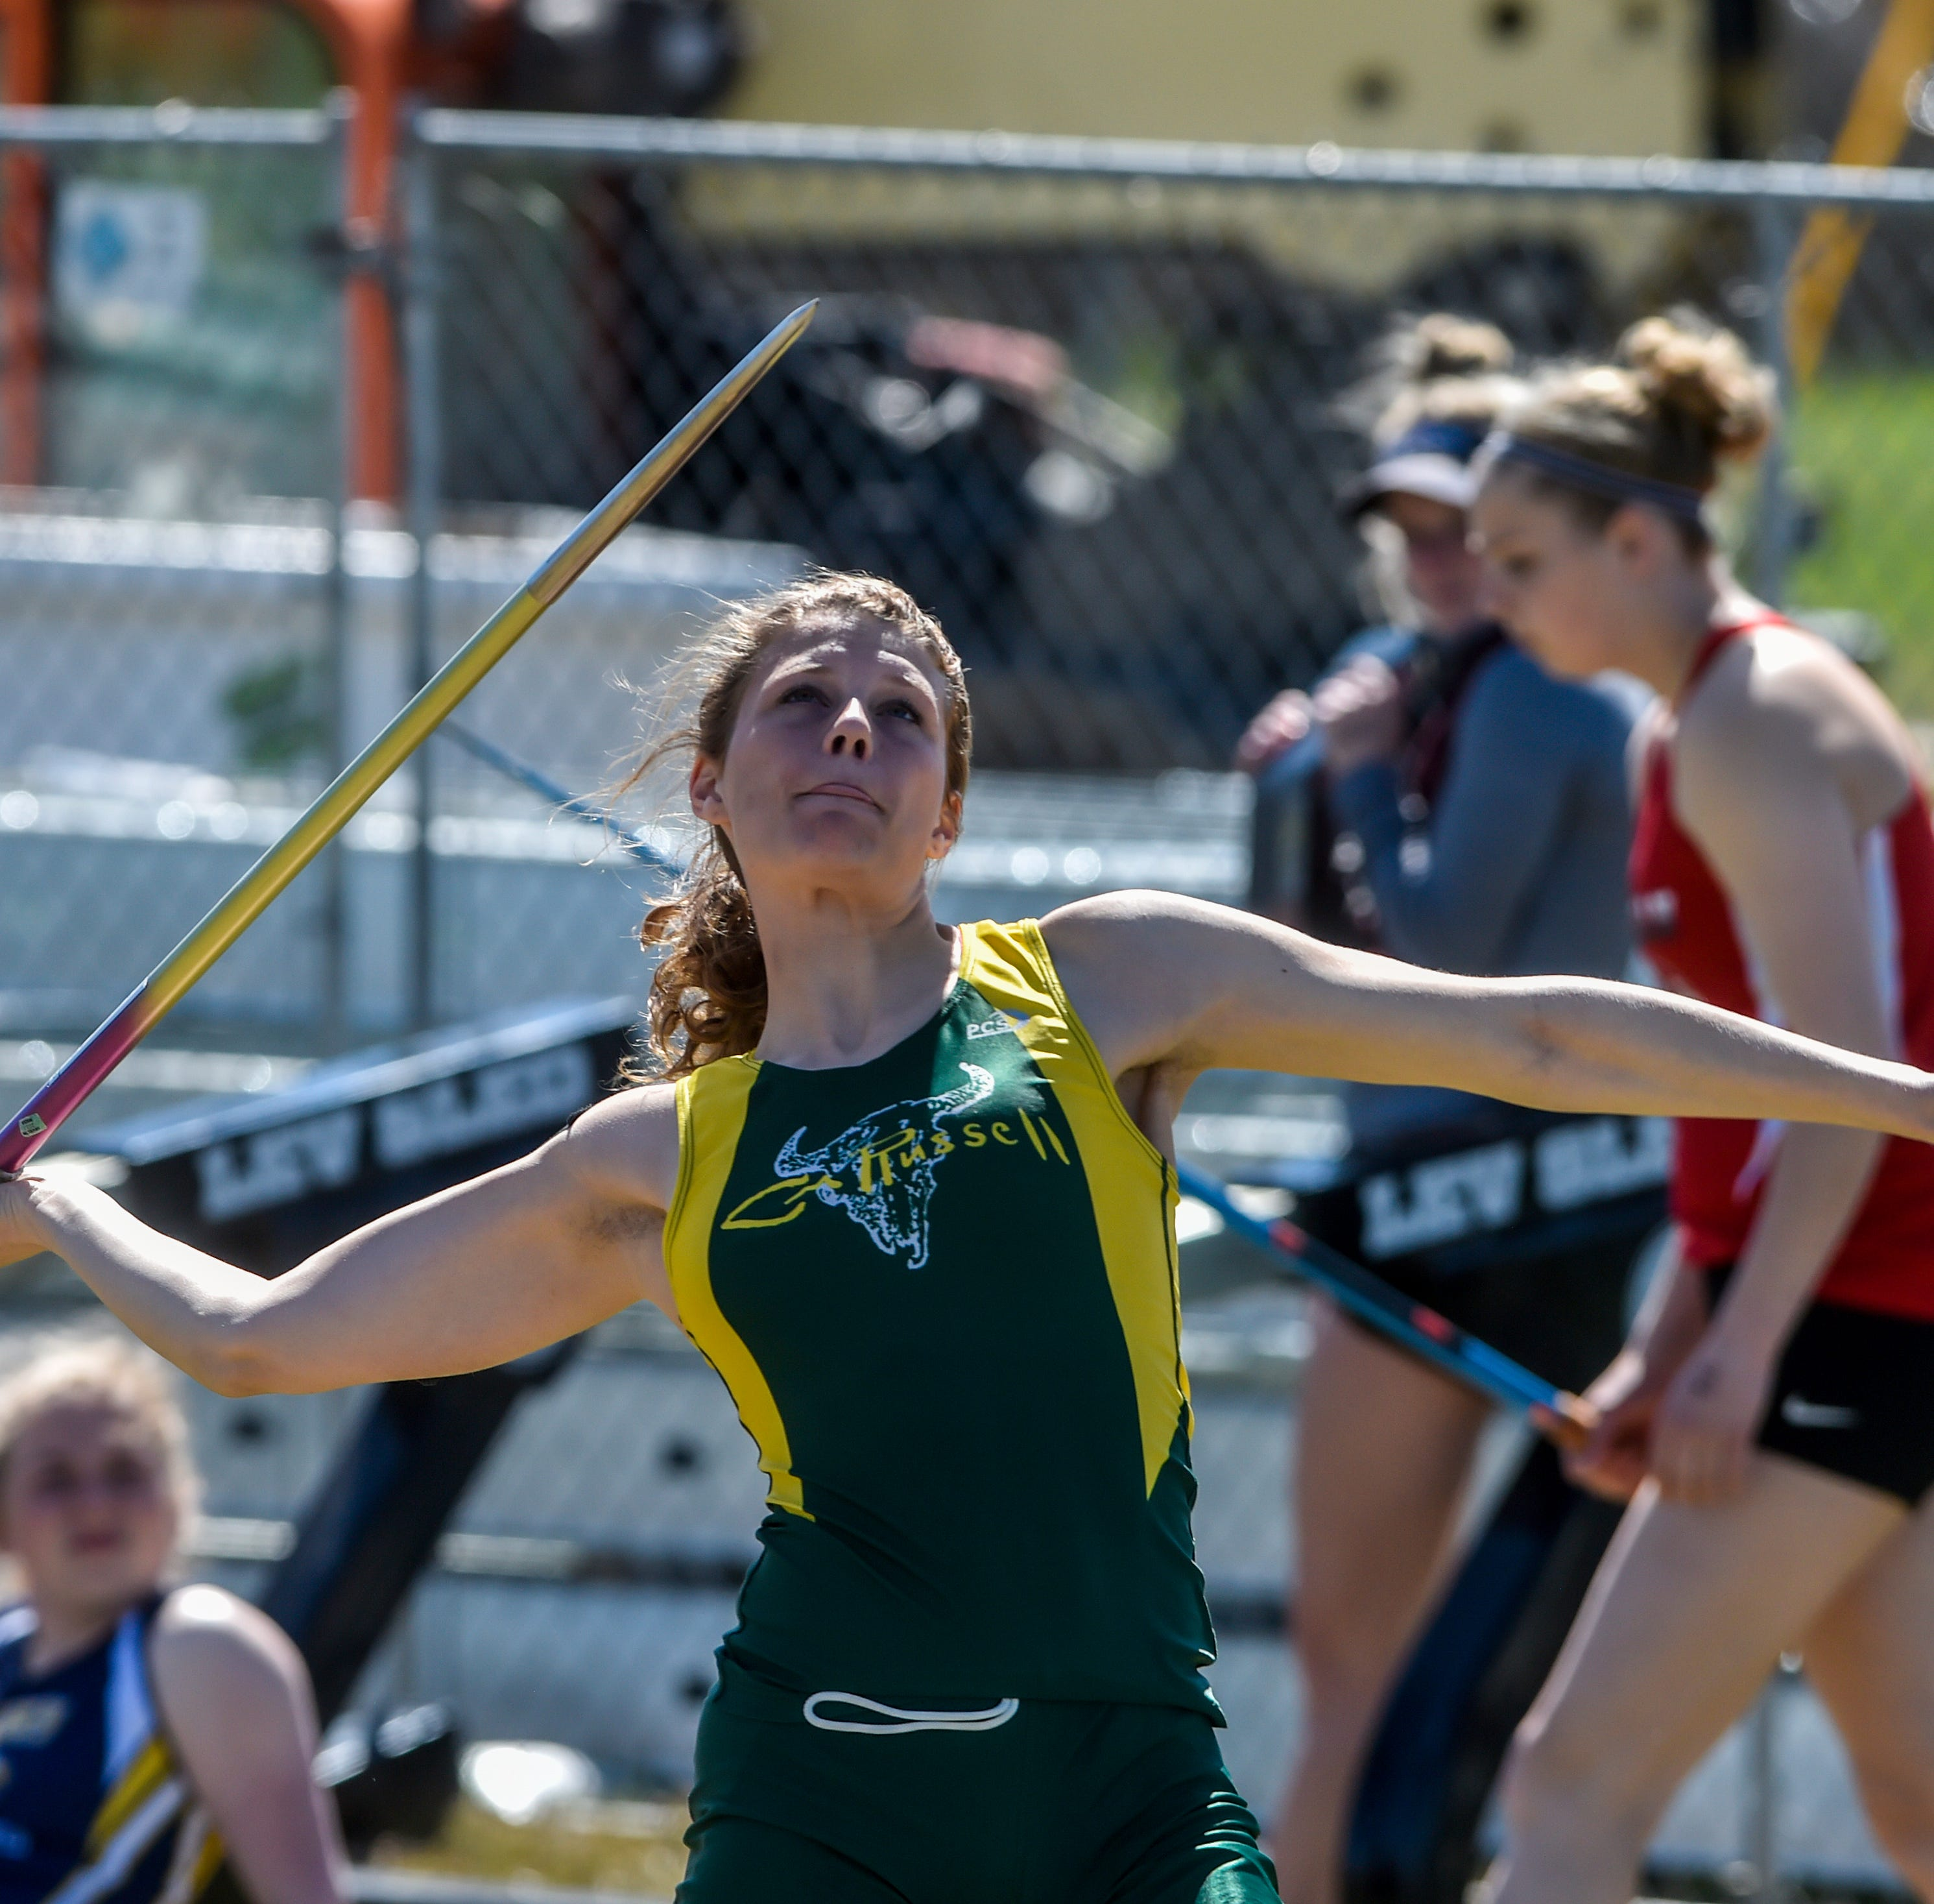 Results from Great Falls Optimist Track Meet